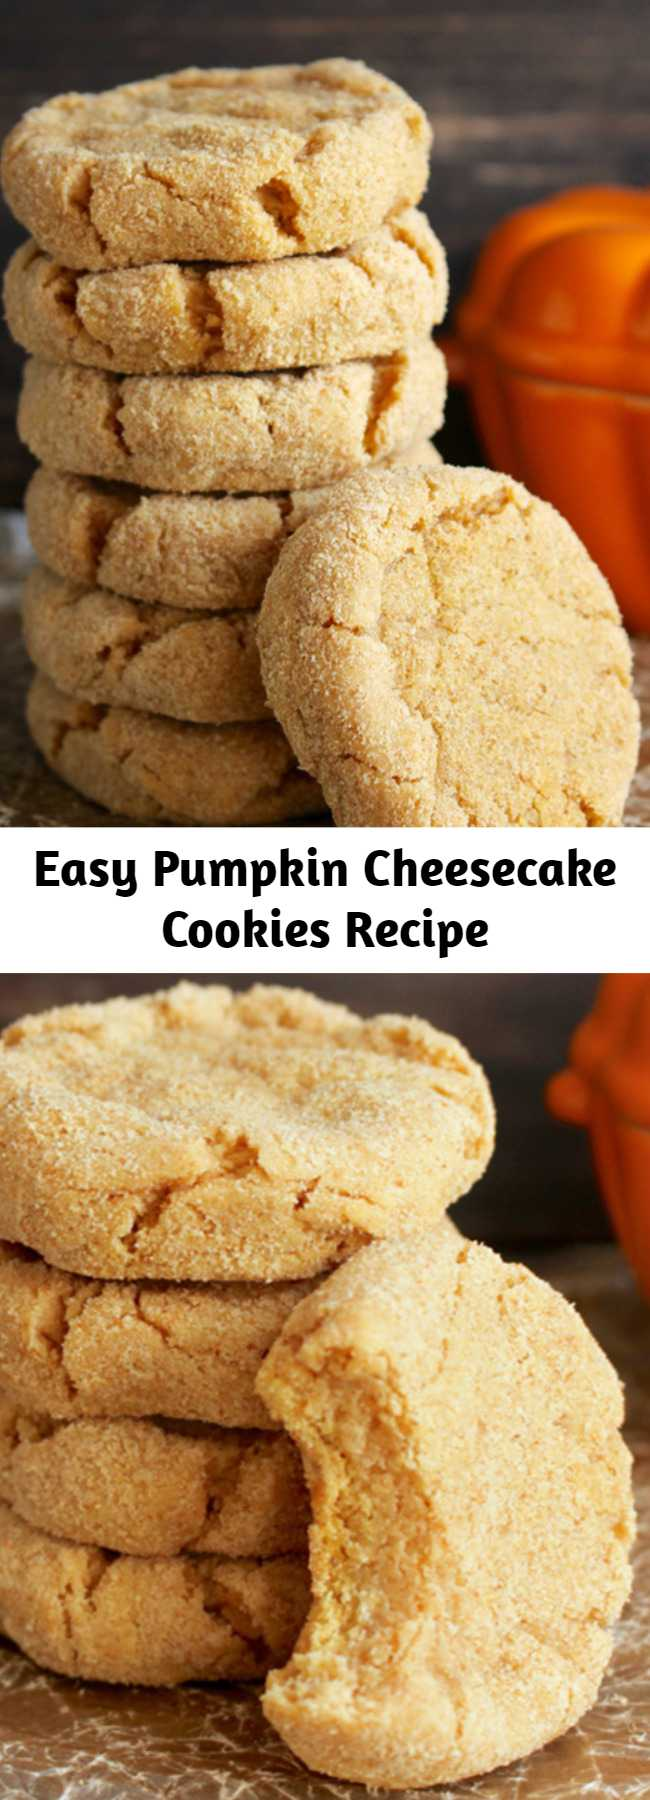 Easy Pumpkin Cheesecake Cookies Recipe - These Pumpkin Cheesecake Cookies are quick to make and will please any pumpkin lover. A soft creamy center with a graham cracker coating- these are the perfect treat!